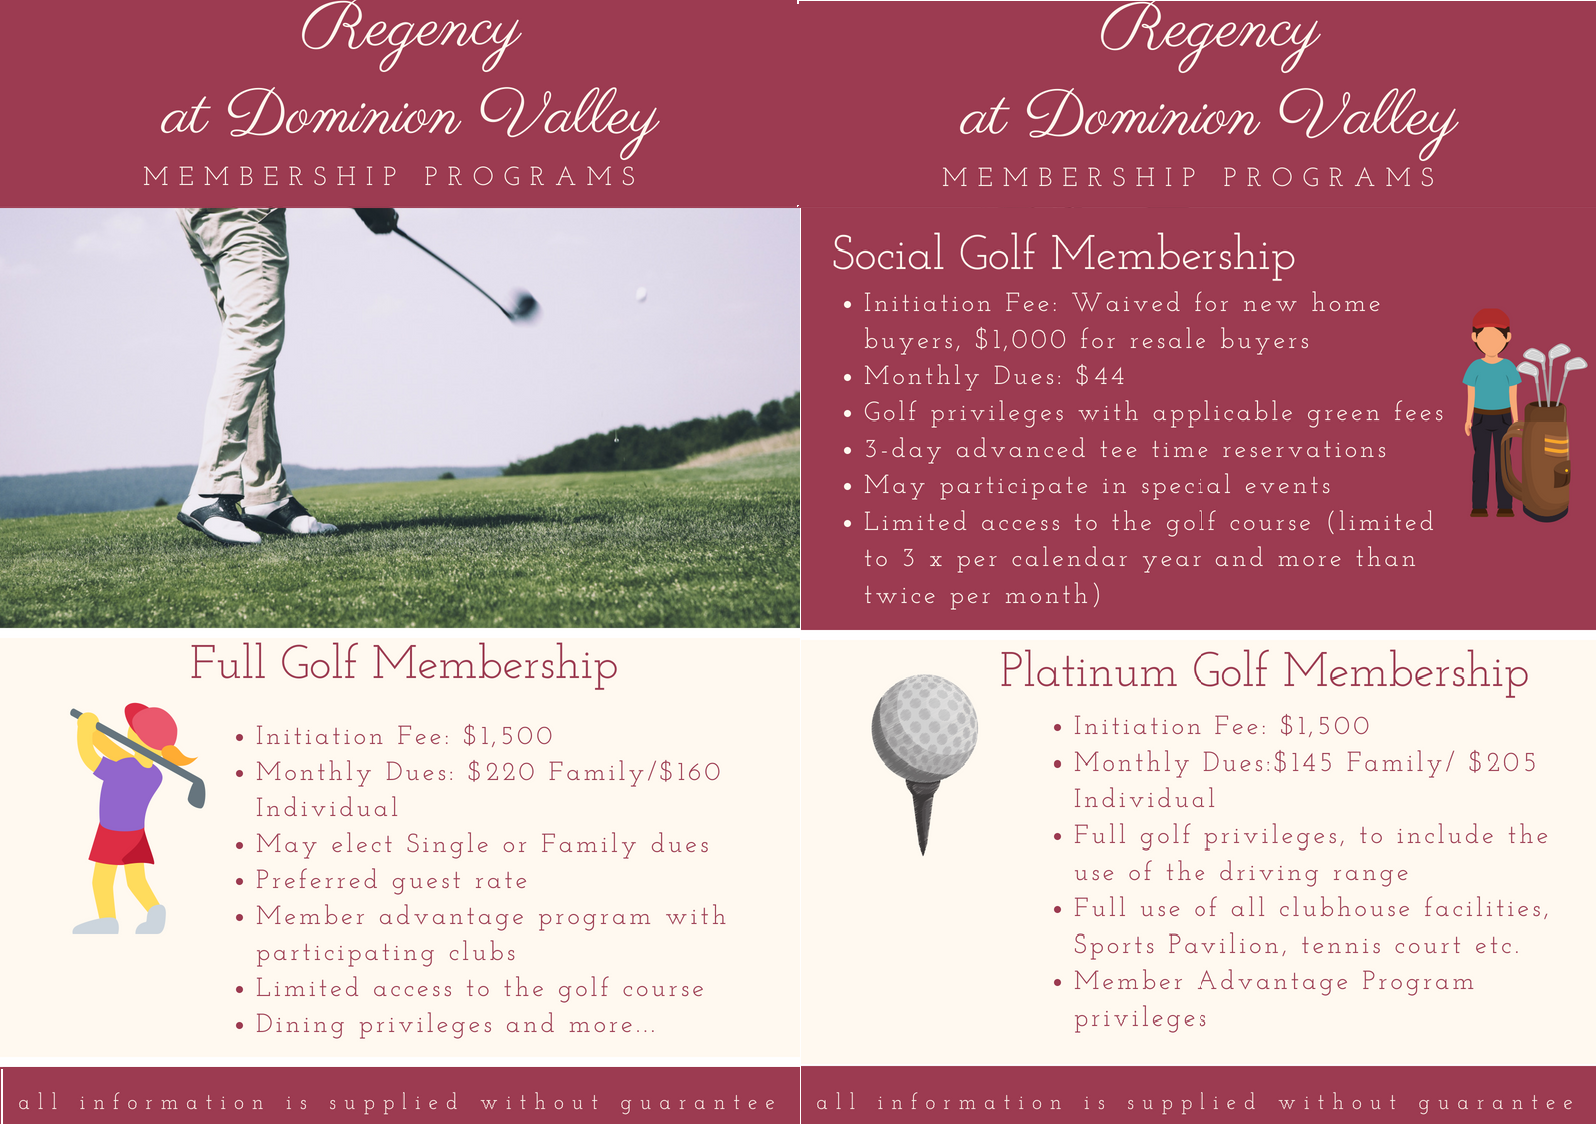 Regency Golf Membership